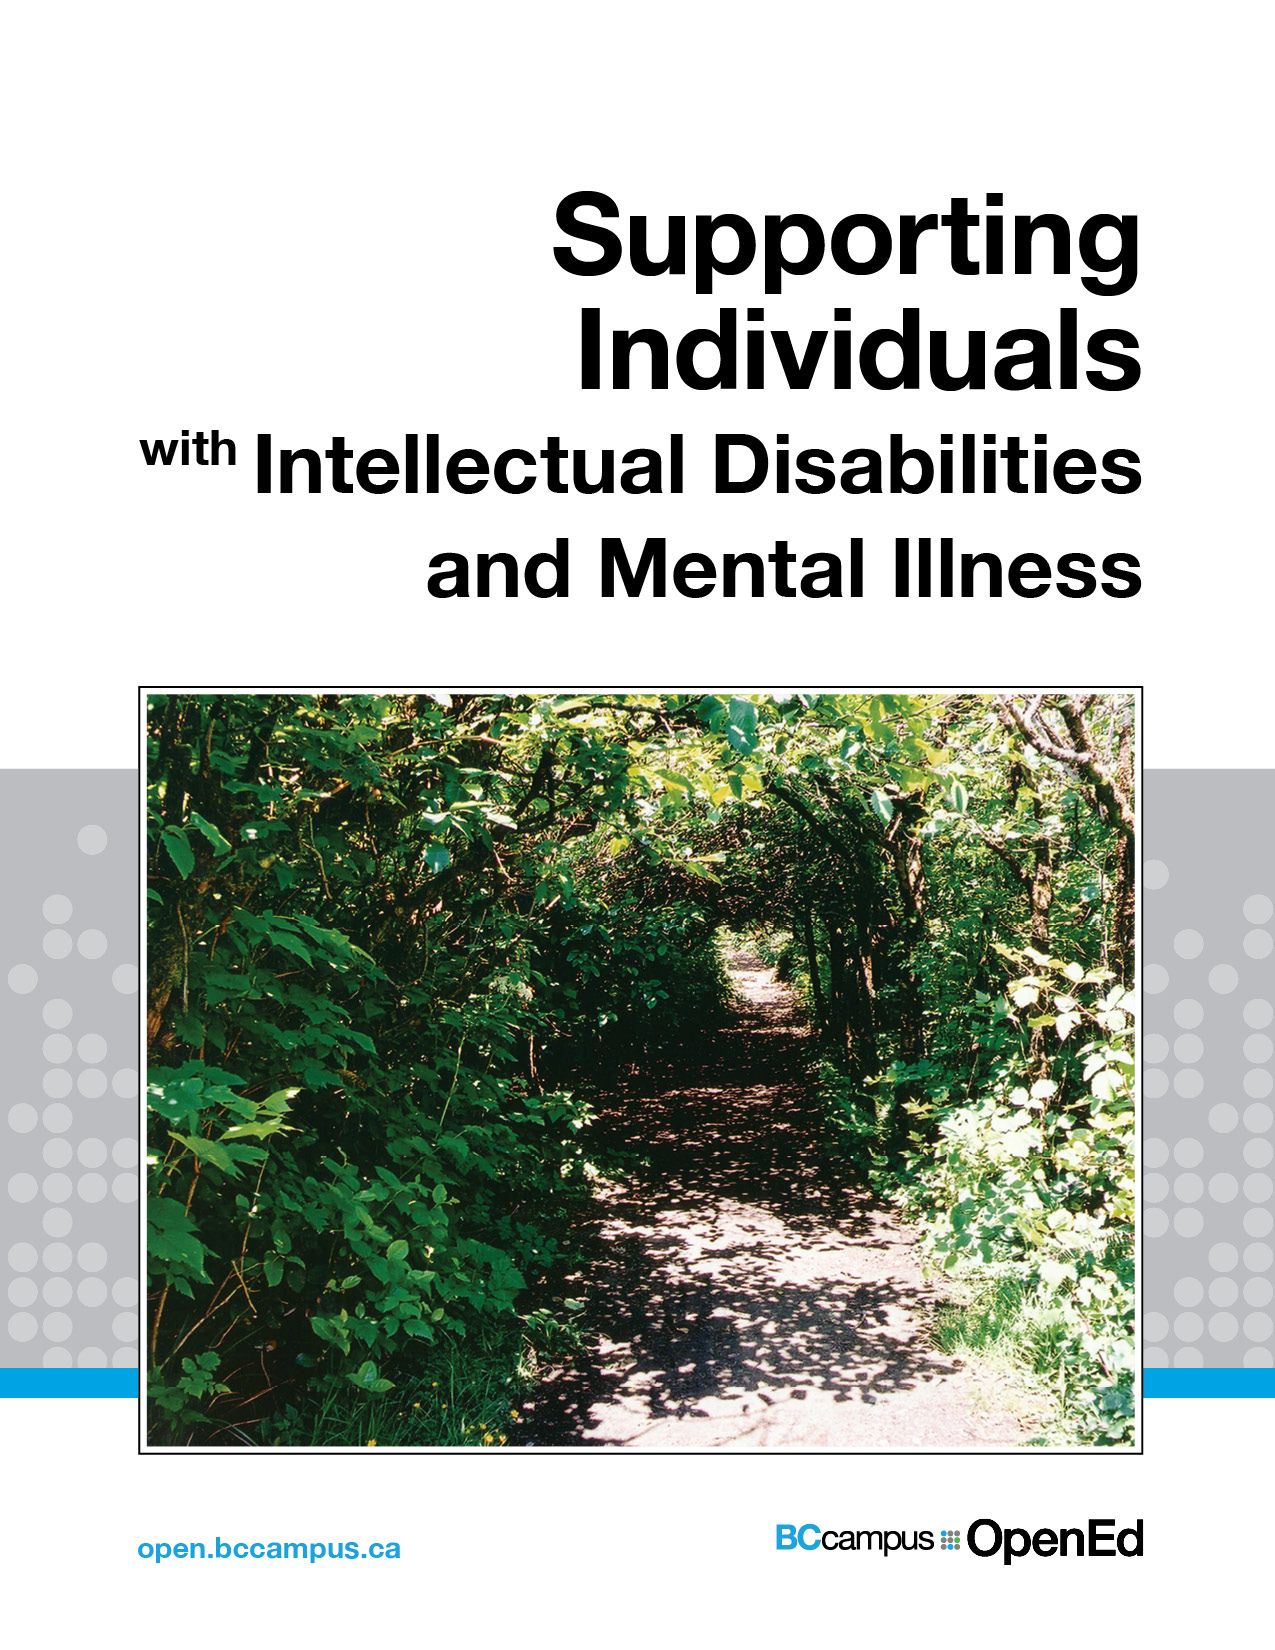 Cover image for Supporting Individuals with Intellectual Disabilities & Mental Illness